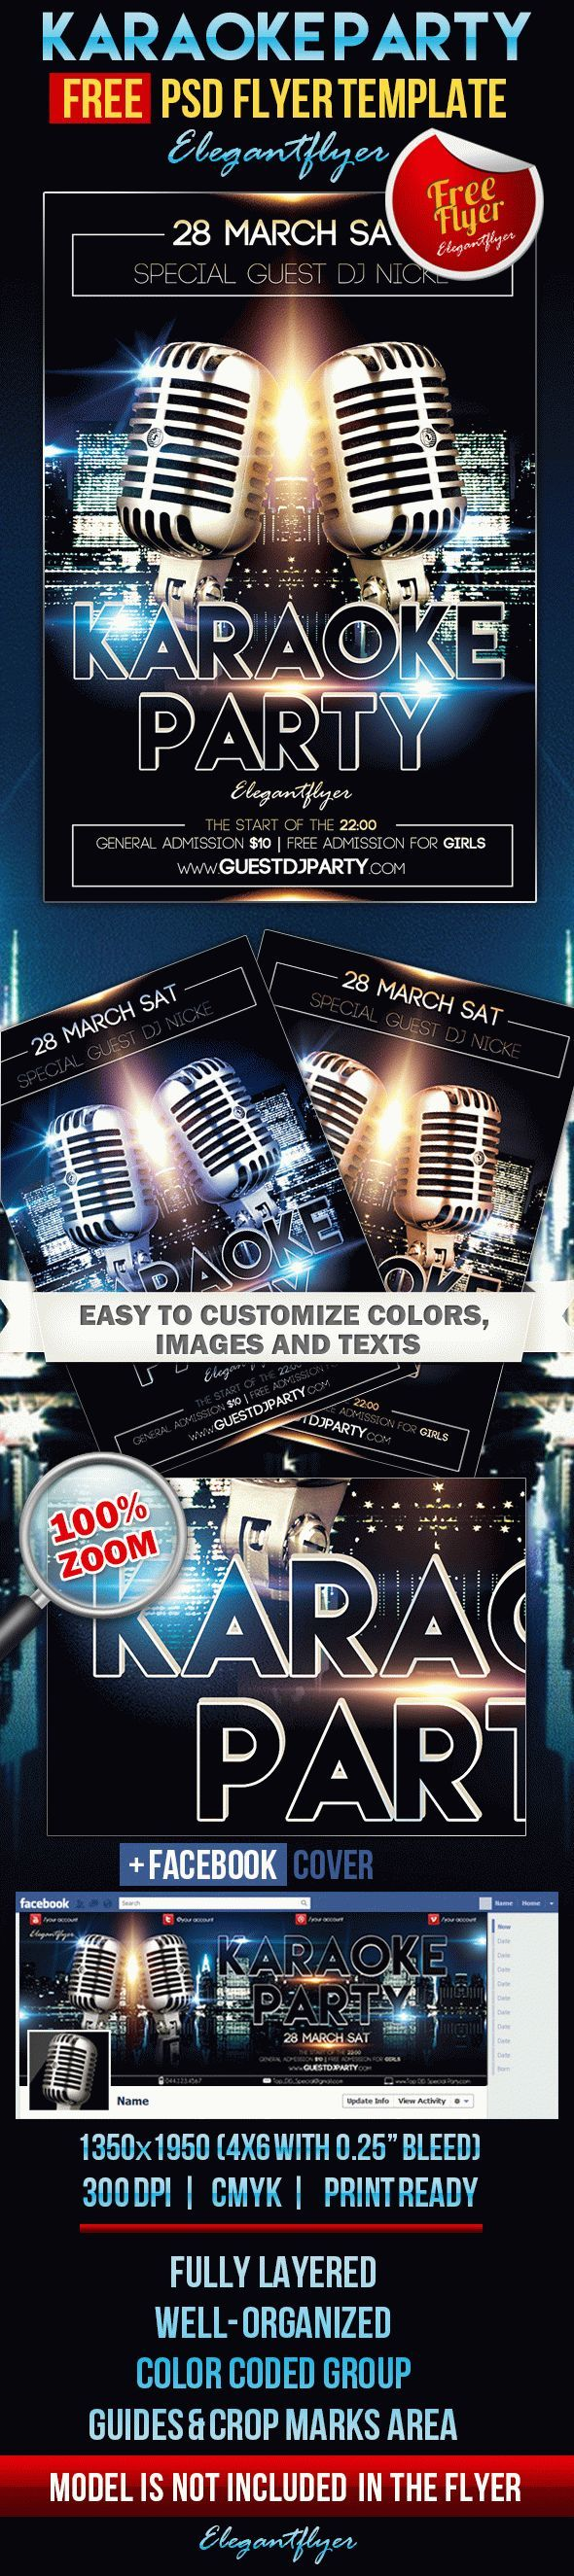 Karaoke Party – Free Flyer PSD Template + Facebook Cover